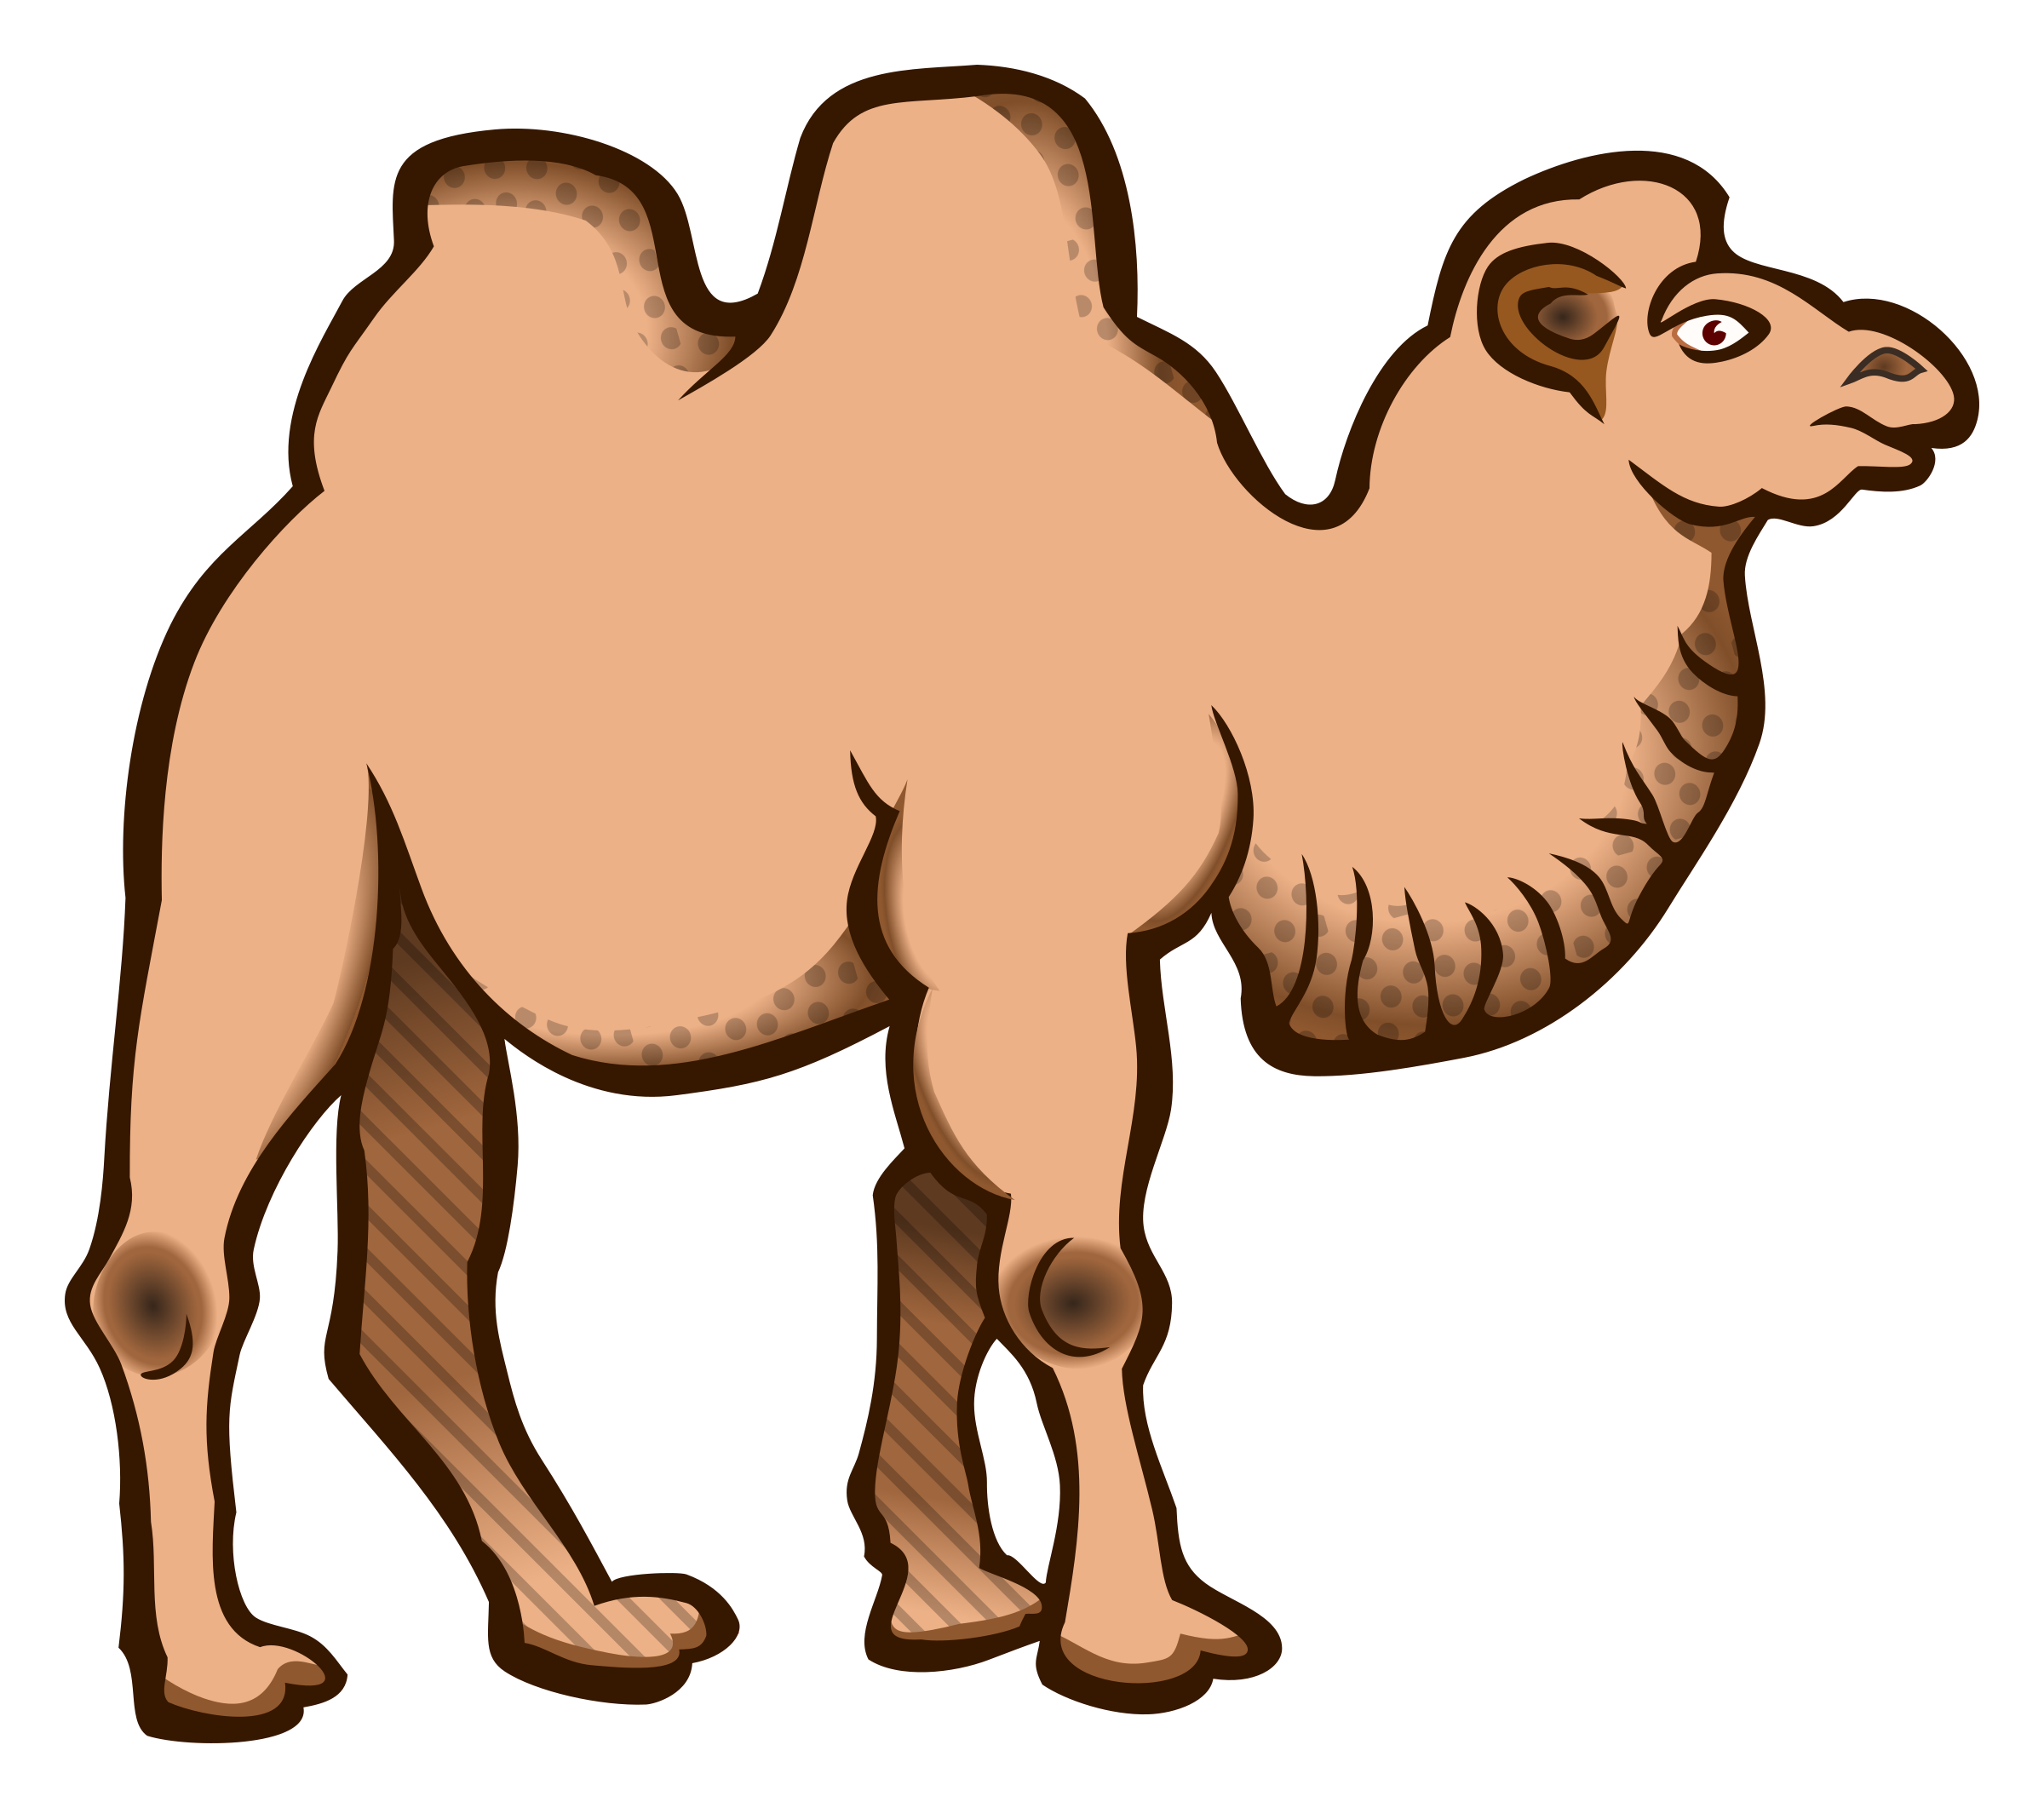 Camil logo clipart graphic royalty free stock Camel clipart camil, Camel camil Transparent FREE for download on ... graphic royalty free stock